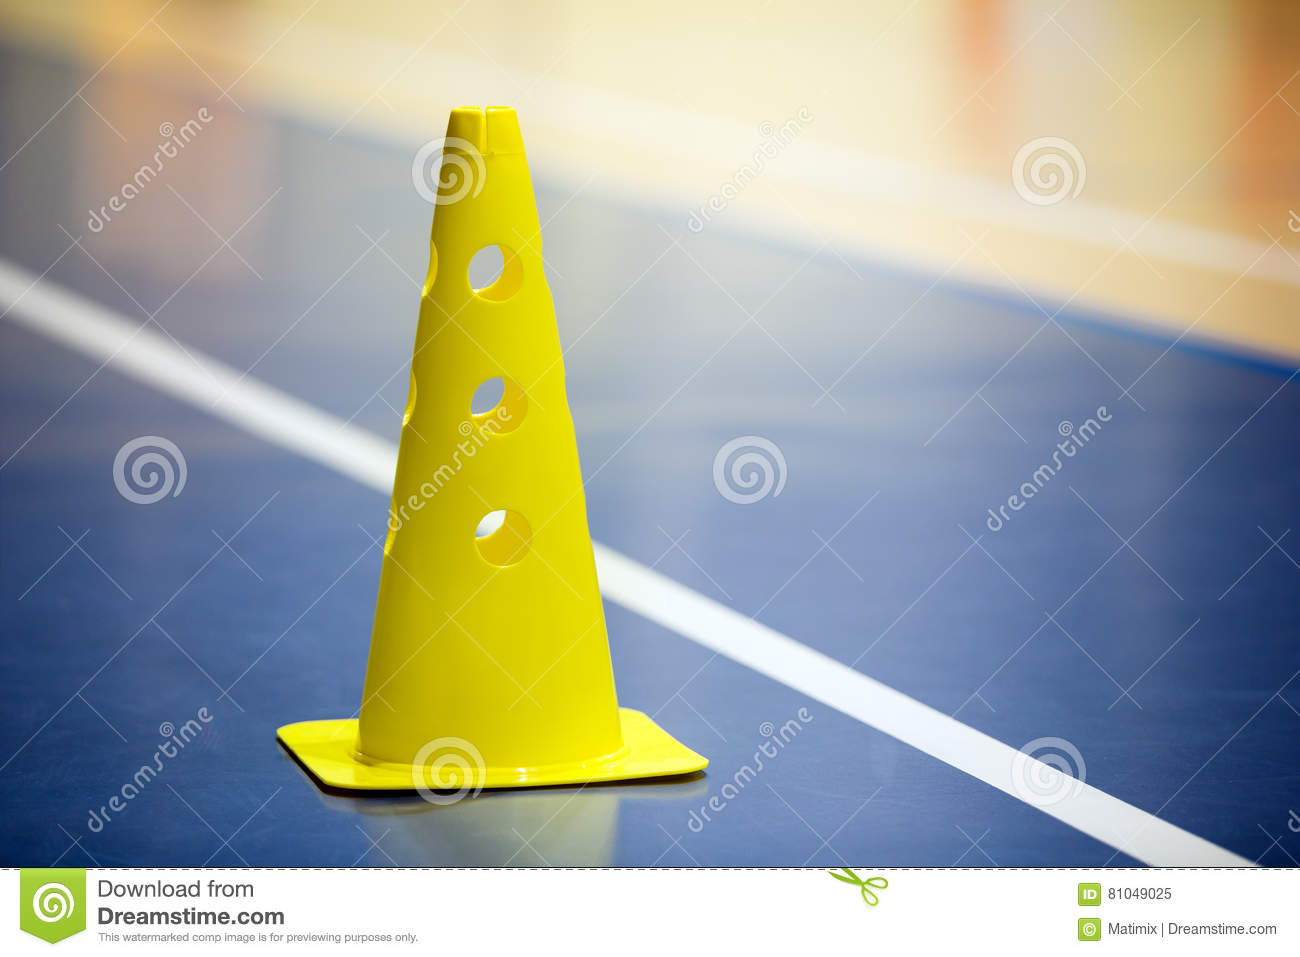 Training soccer futsal indoor gym training. Soccer cone on the wooden floor